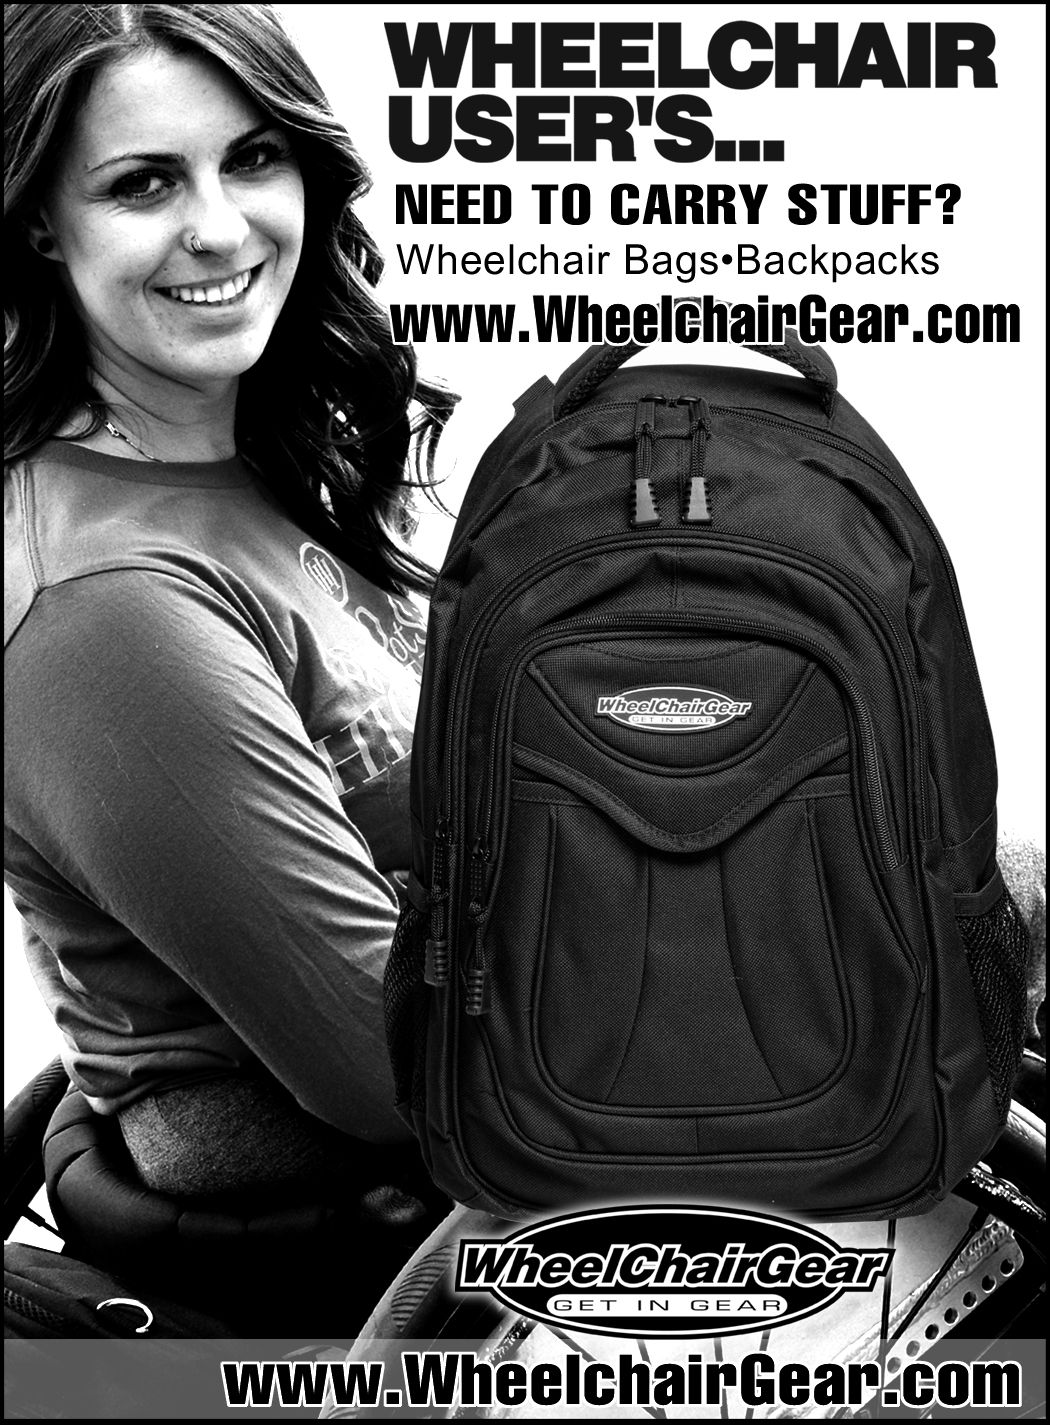 Wheelchair User S Need To Carry Stuff Check Us Out Click Here Www Wheelchairgear Com For A Large Selection Of Ways To Help You Wheelchair Bags Bags Backpacks